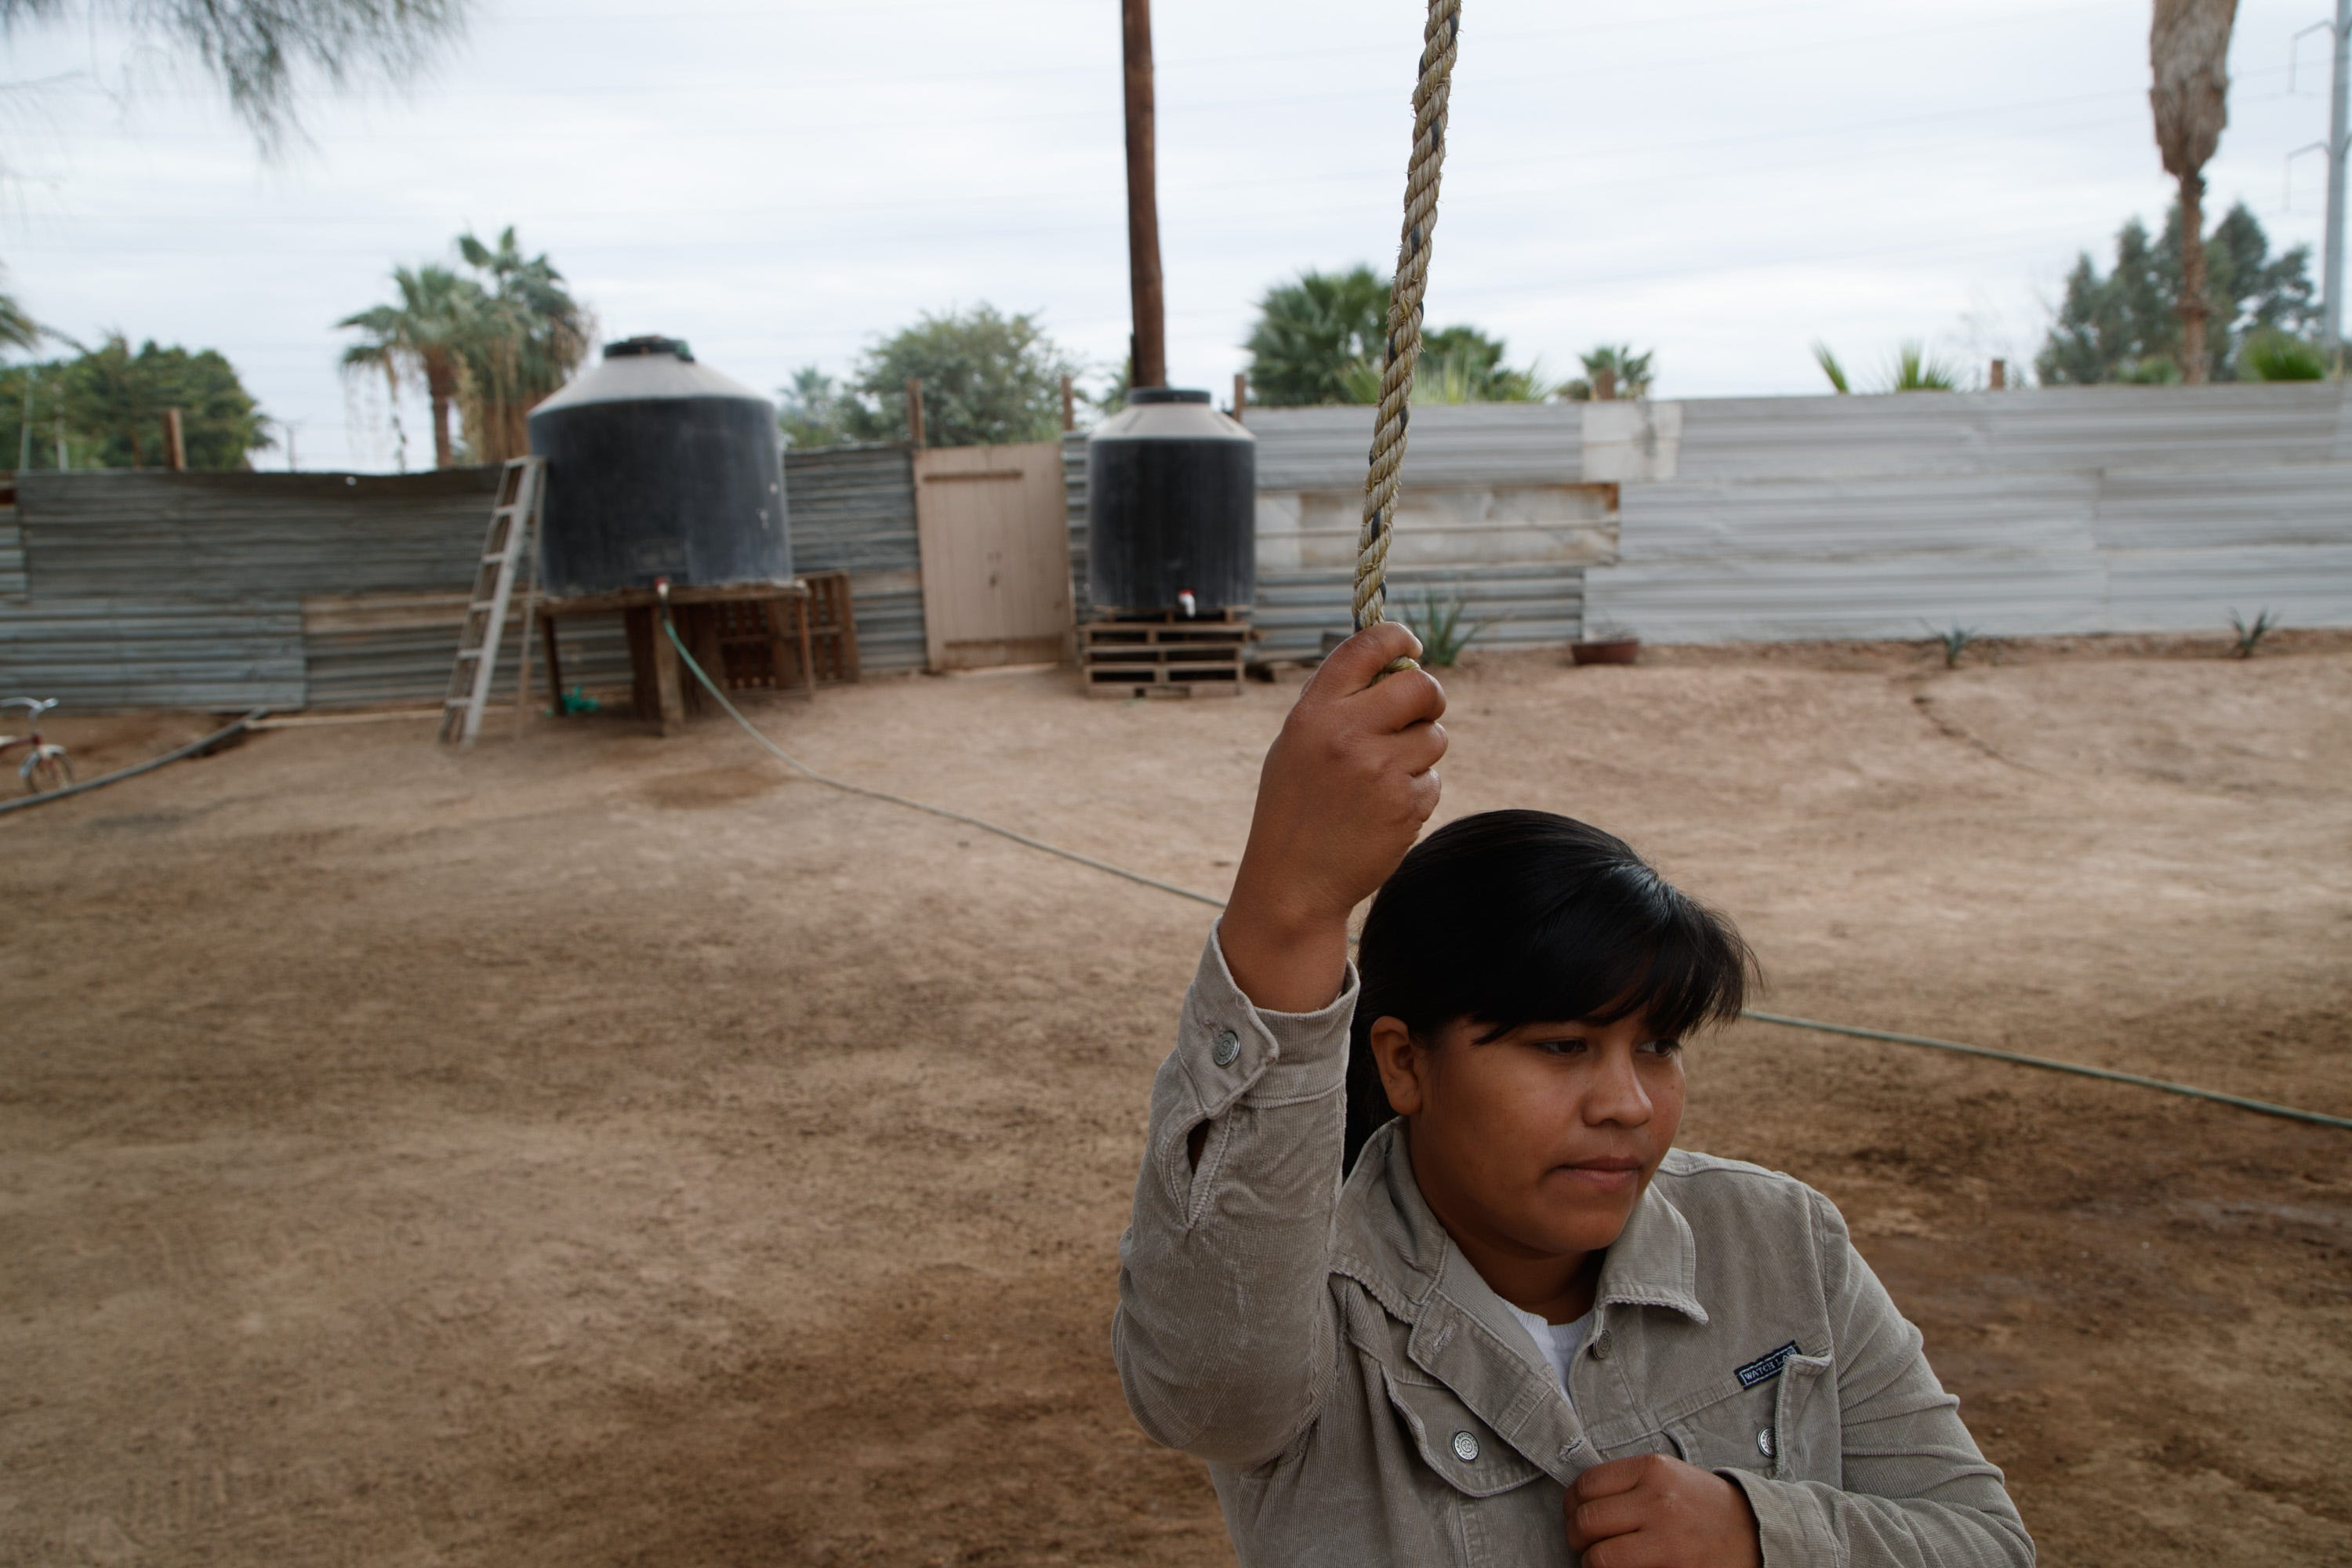 Yojana Núñez Ramírez lives with her husband and their 2-year-old daughter, Fernanda, on a small farm next to the Industrias Zahori factory in Mexicali.